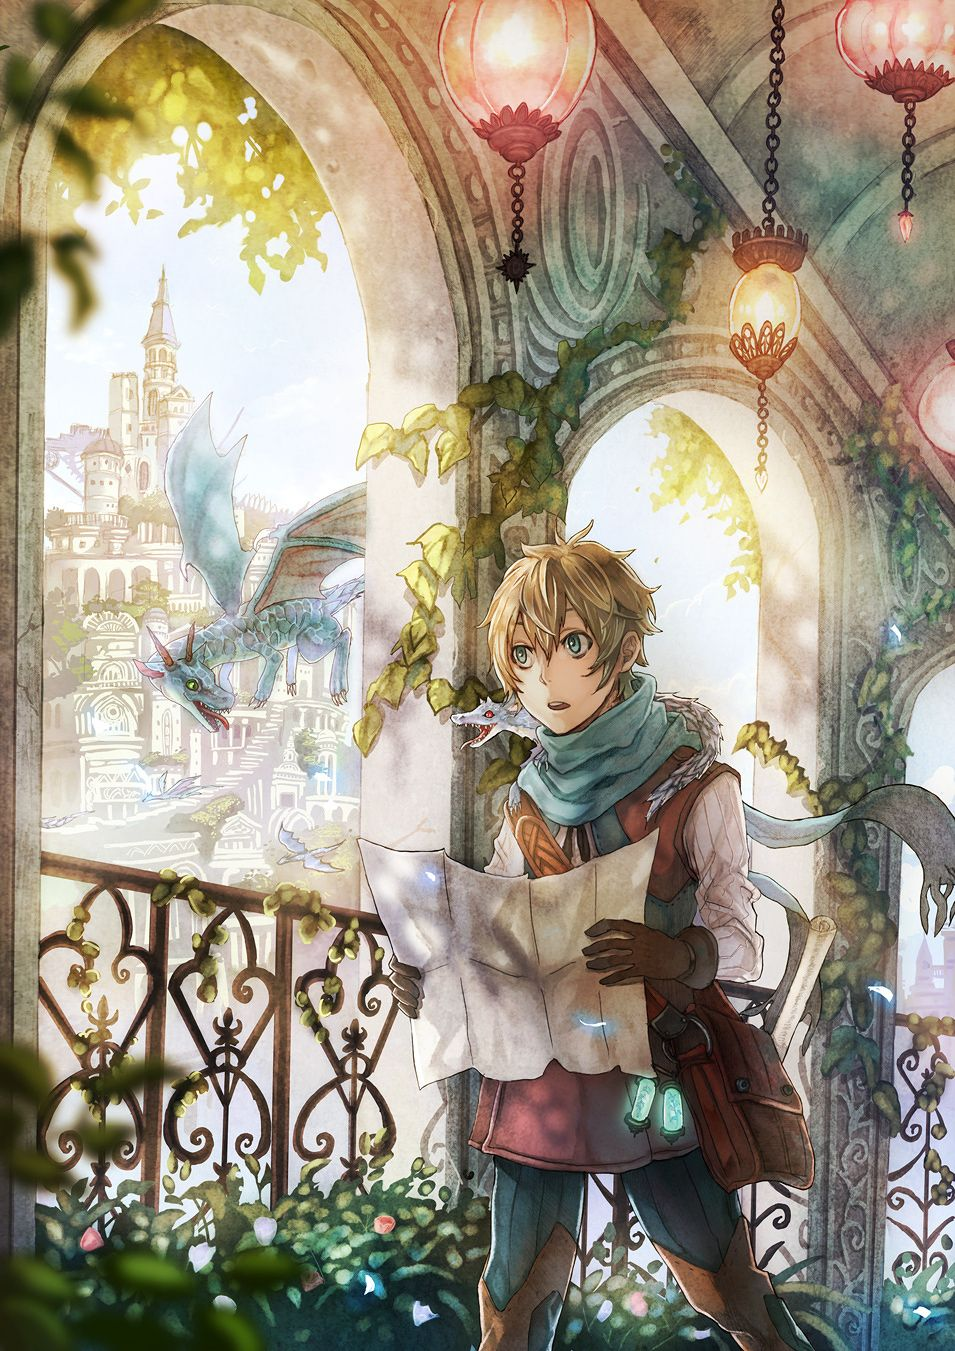 ✮ ANIME ART ✮ anime boy. . .explorer. . .dragons. . .castle. . .architecture. . .map. . .fairytale. . .fantasy. . .cute. . .kawaii